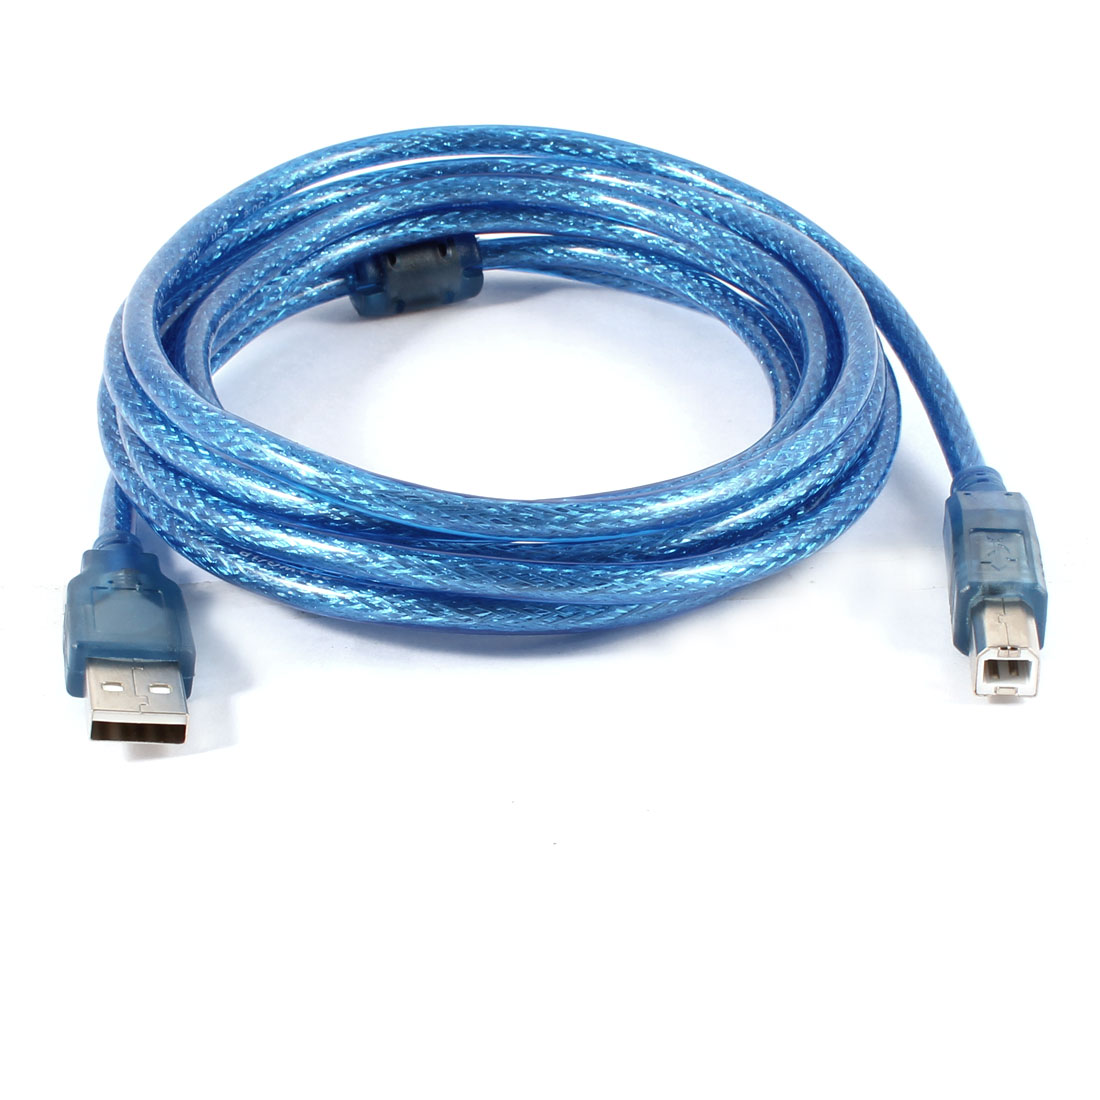 High Speed USB 2.0 A Male to B Male M/M Printer Extension Cable Clear Blue 10ft